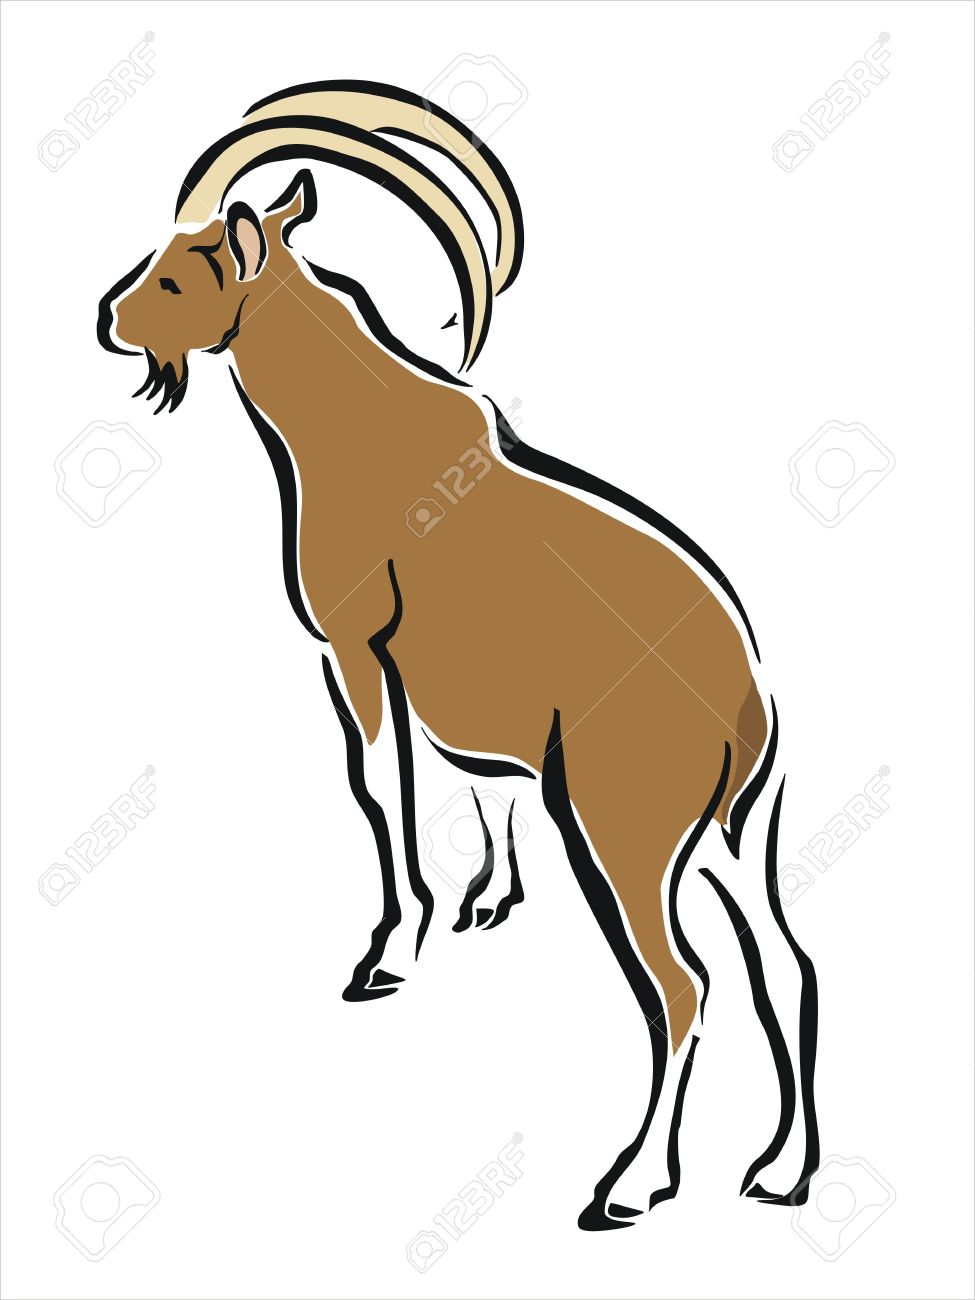 975x1300 Drawing Of A Brown Mountain Goat Royalty Free Cliparts, Vectors